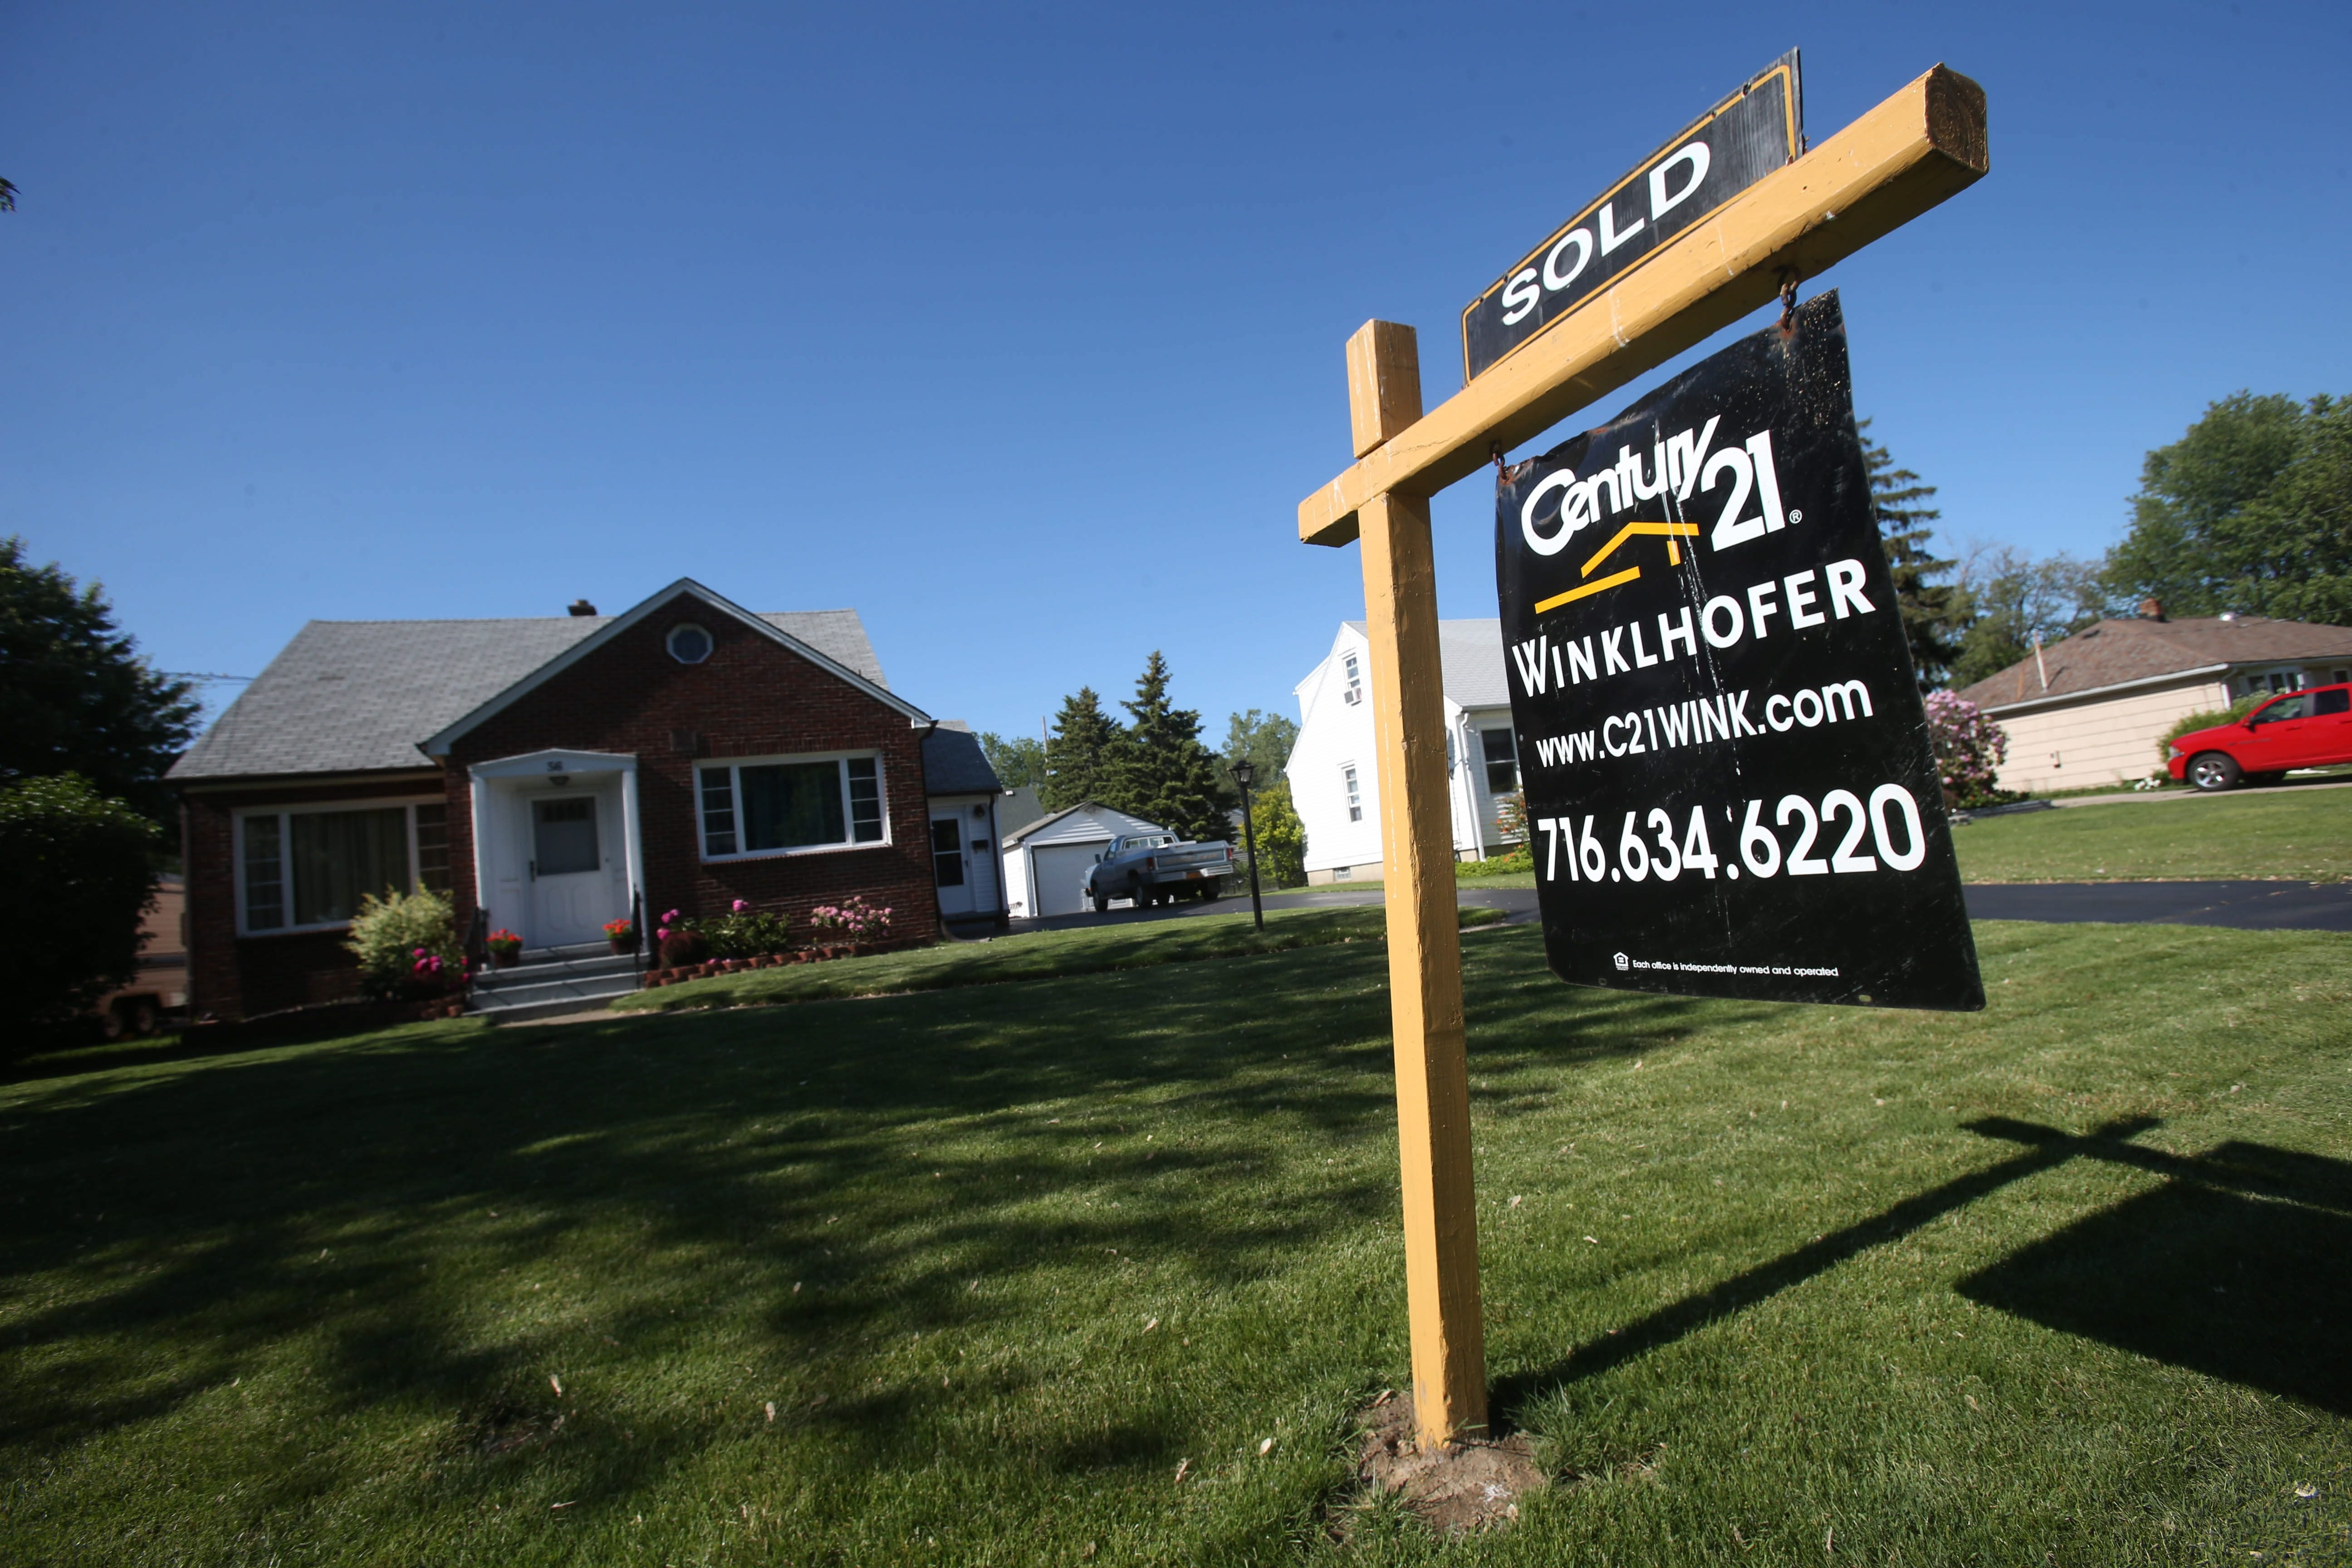 Pending home sales rose 17.9 percent in April, driving largest year-over-year increase since last May.